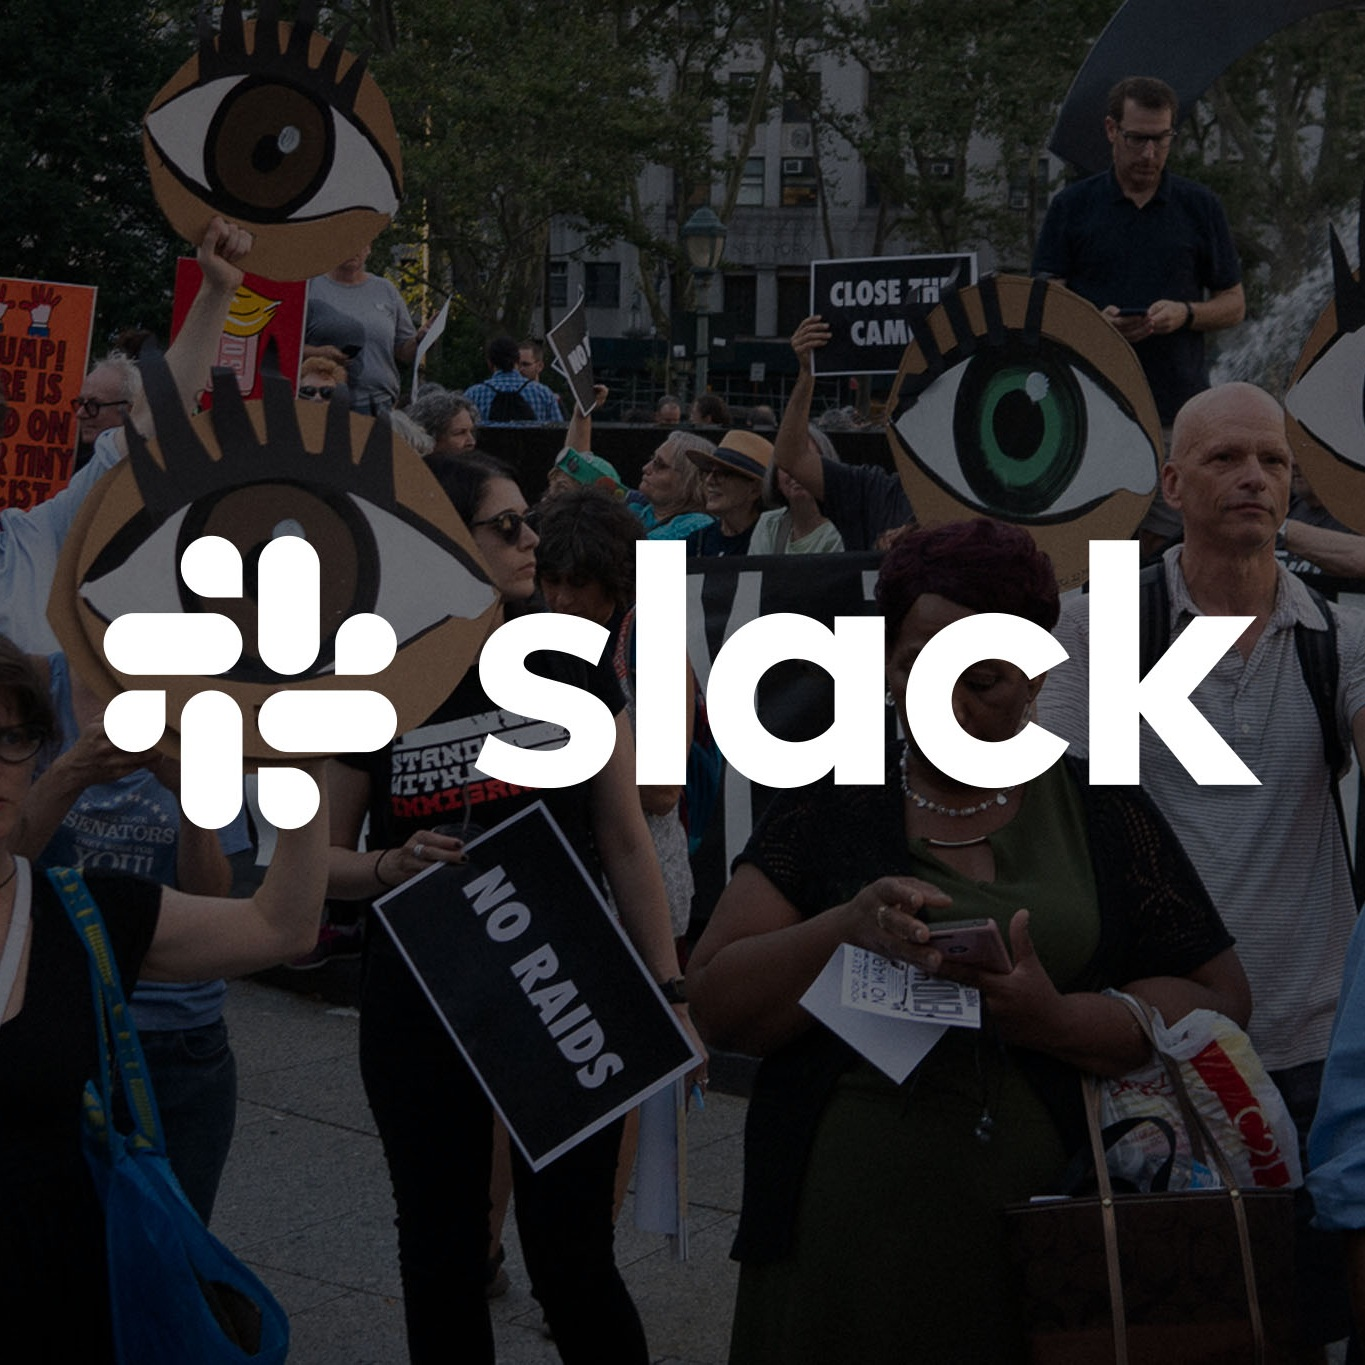 Digital Team - Digital volunteers work remotely in our Slack community, contributing to LID News and filling support roles like copywriting, web admin and social media management.Slack?